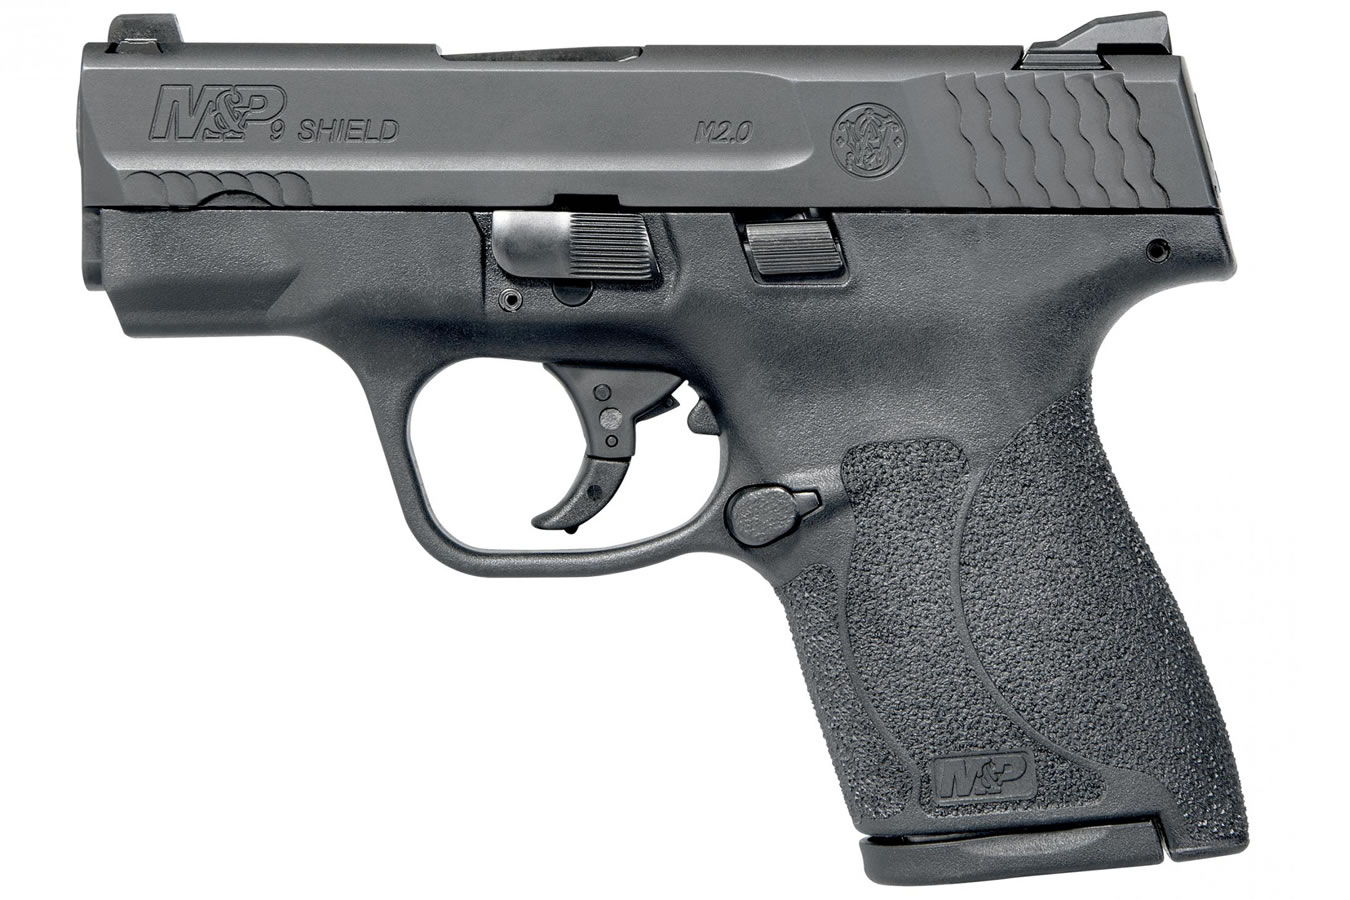 MP9 SHIELD M2.0 9MM W/NIGHT SIGHTS (LE)